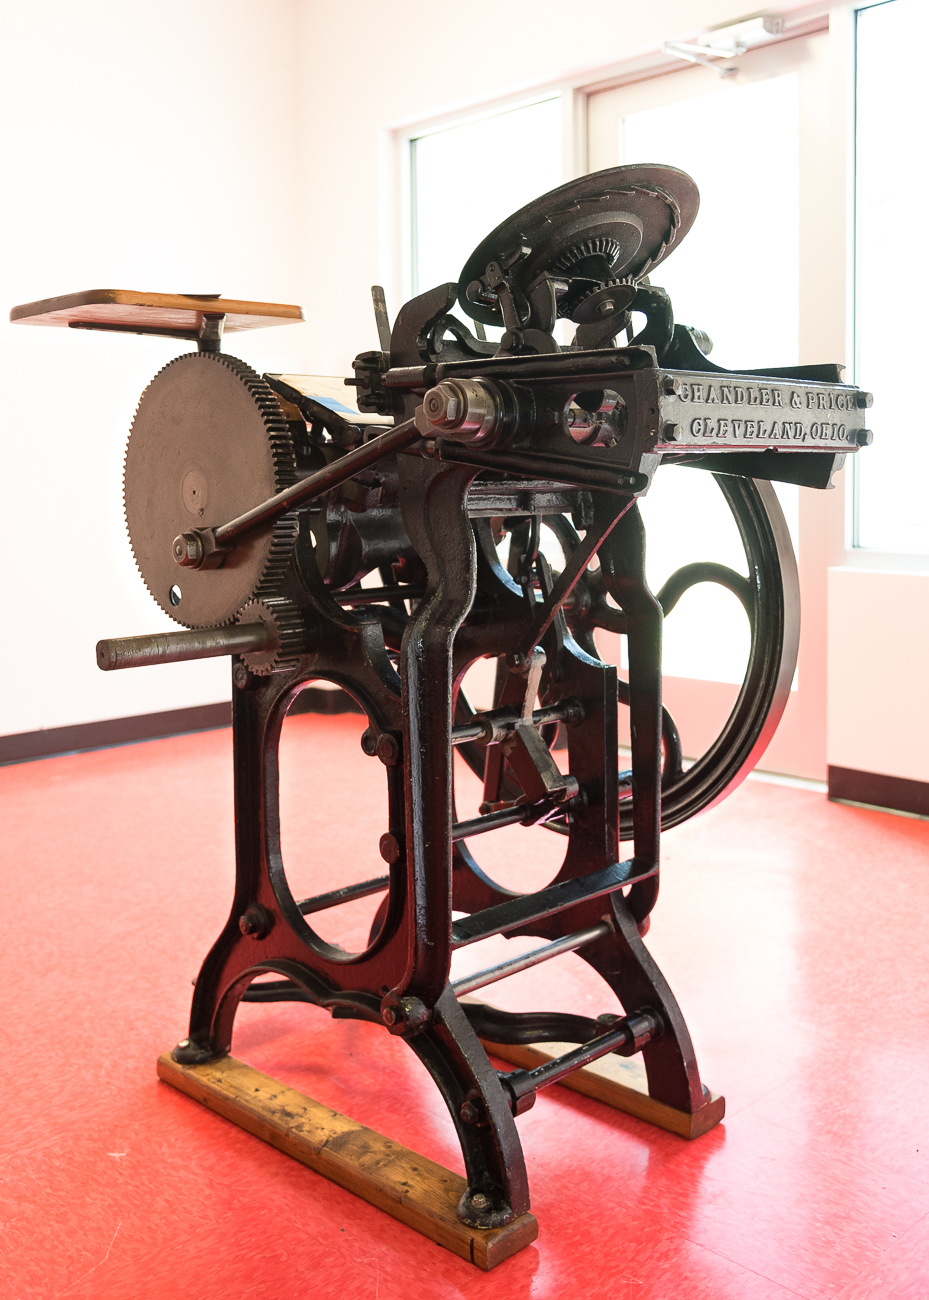 The oldest printer in the museum is from 1820 and requires the user to work a pedal in order to make the machine run. / Image: Phil Armstrong, Cincinnati Refined // Published: 7.20.18